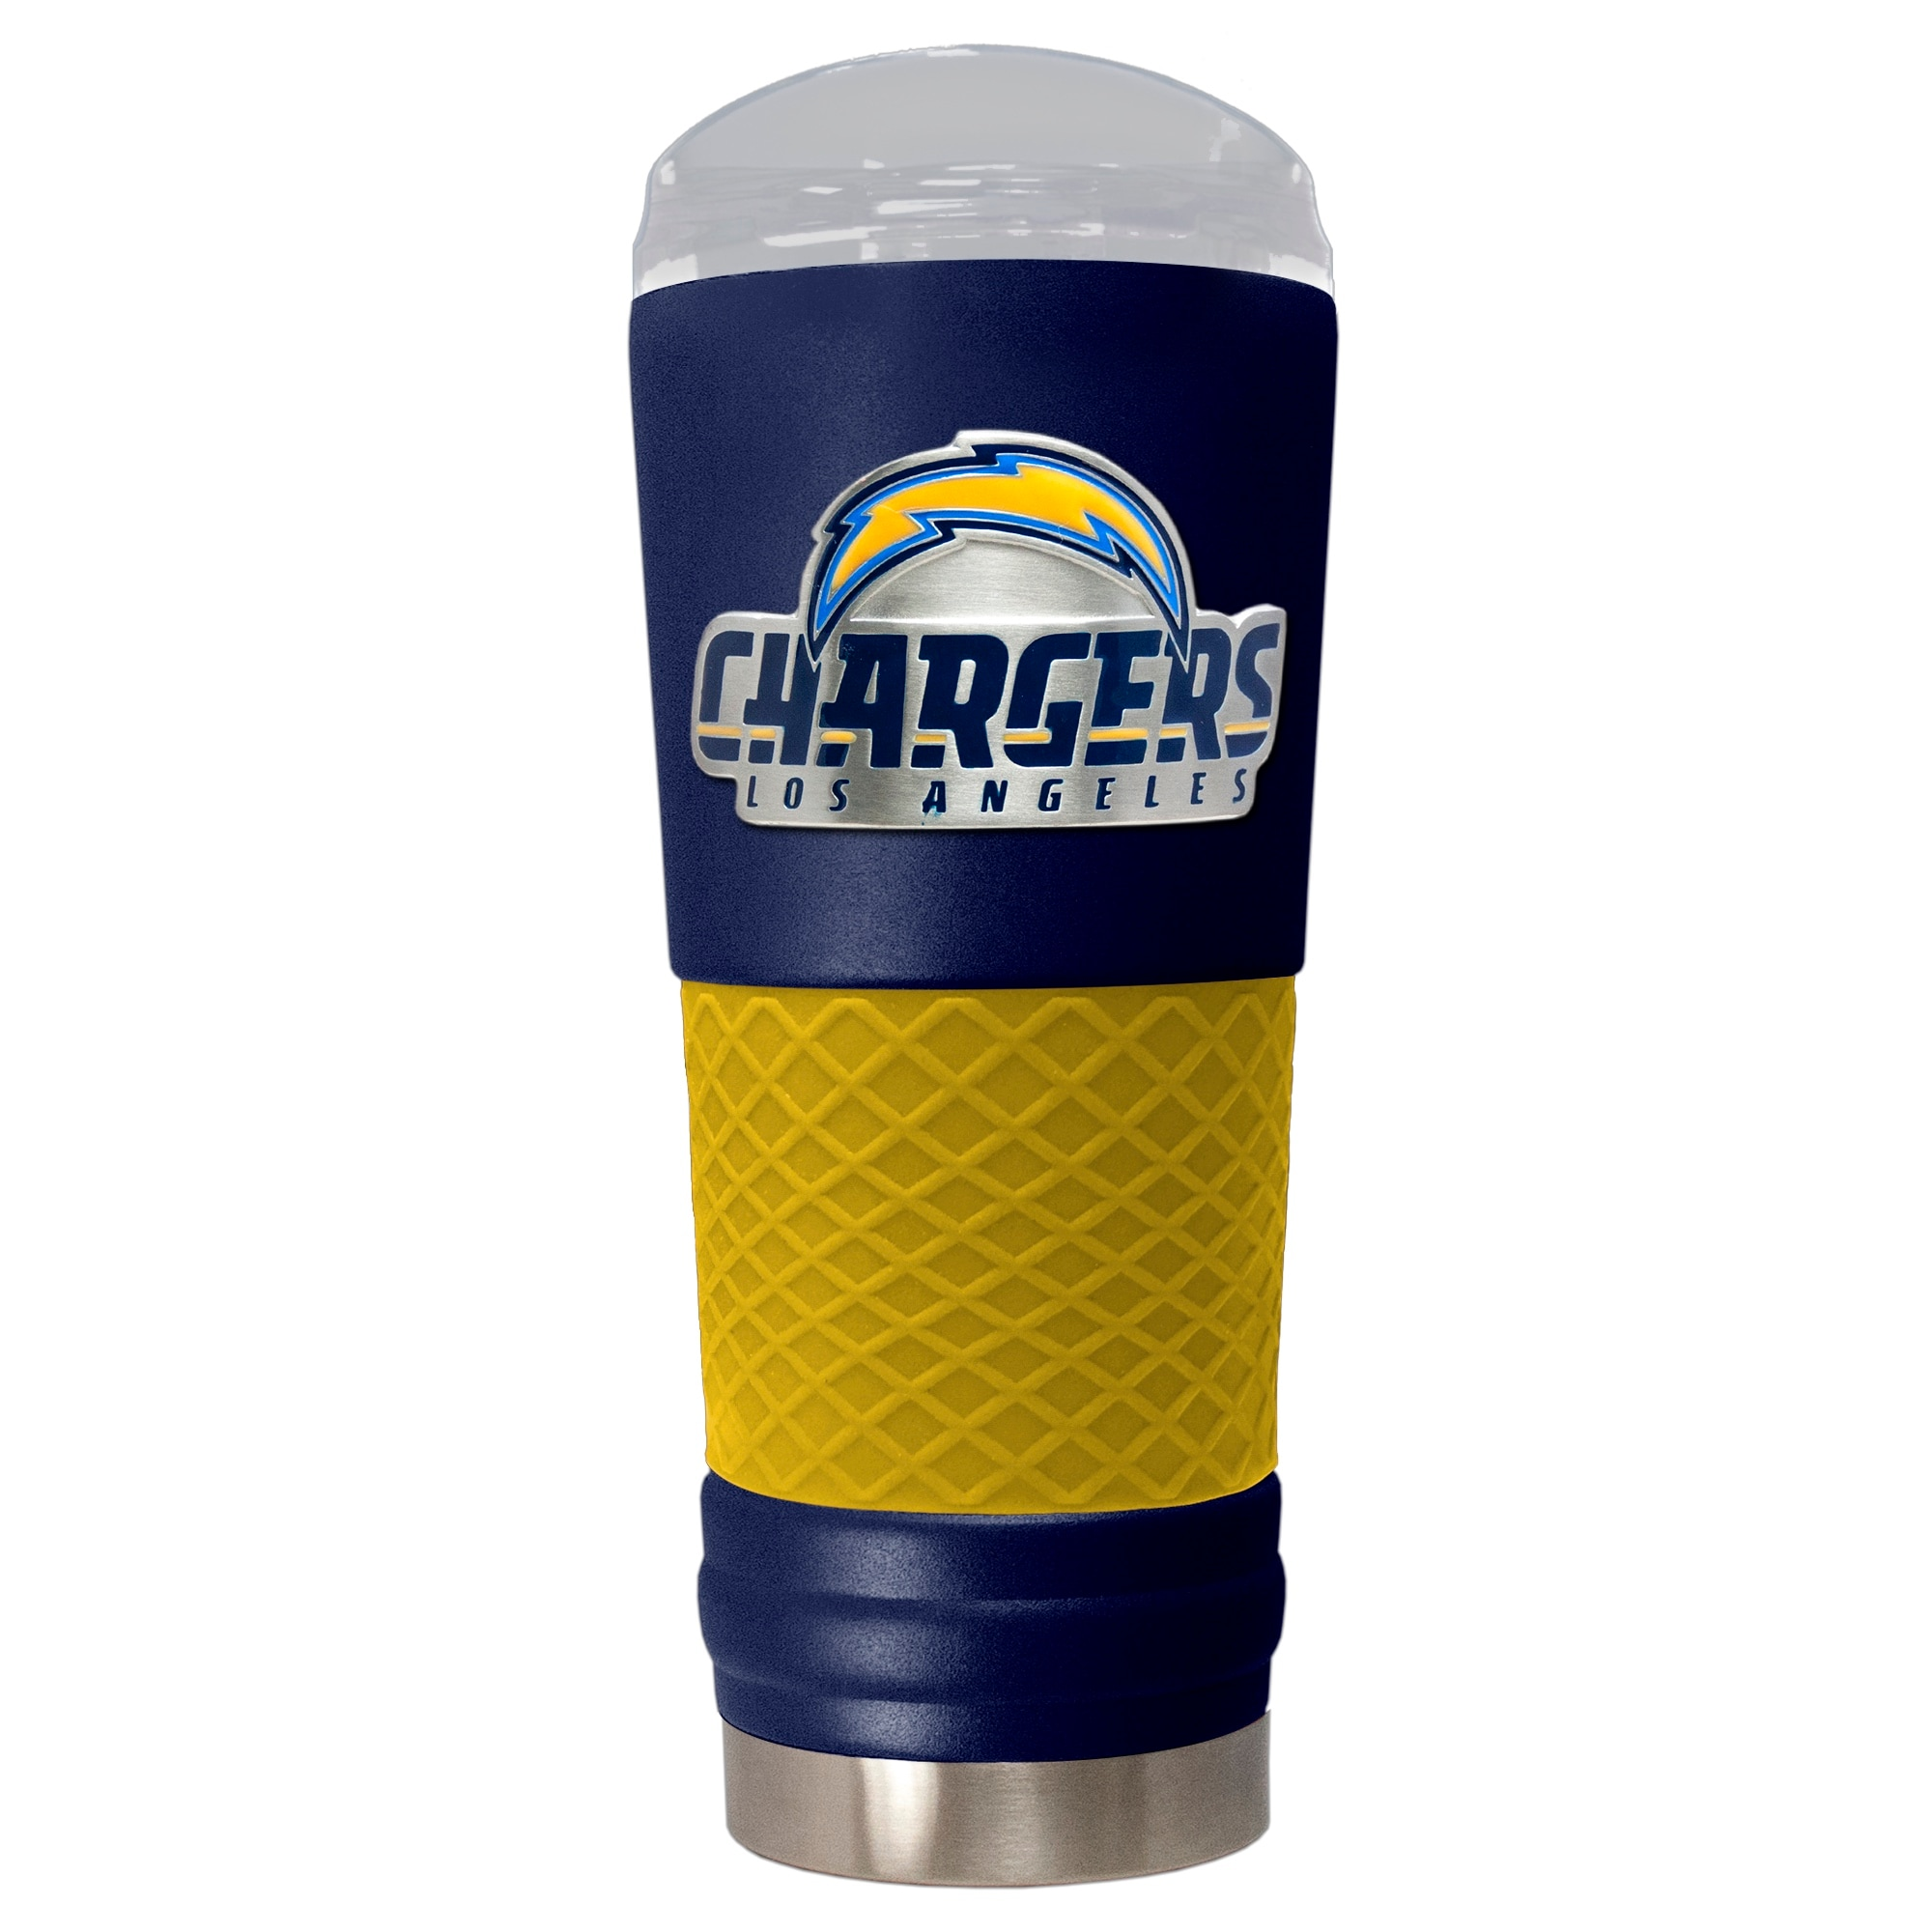 Los Angeles Chargers 24oz. Powder Coated Draft Travel Mug - Blue